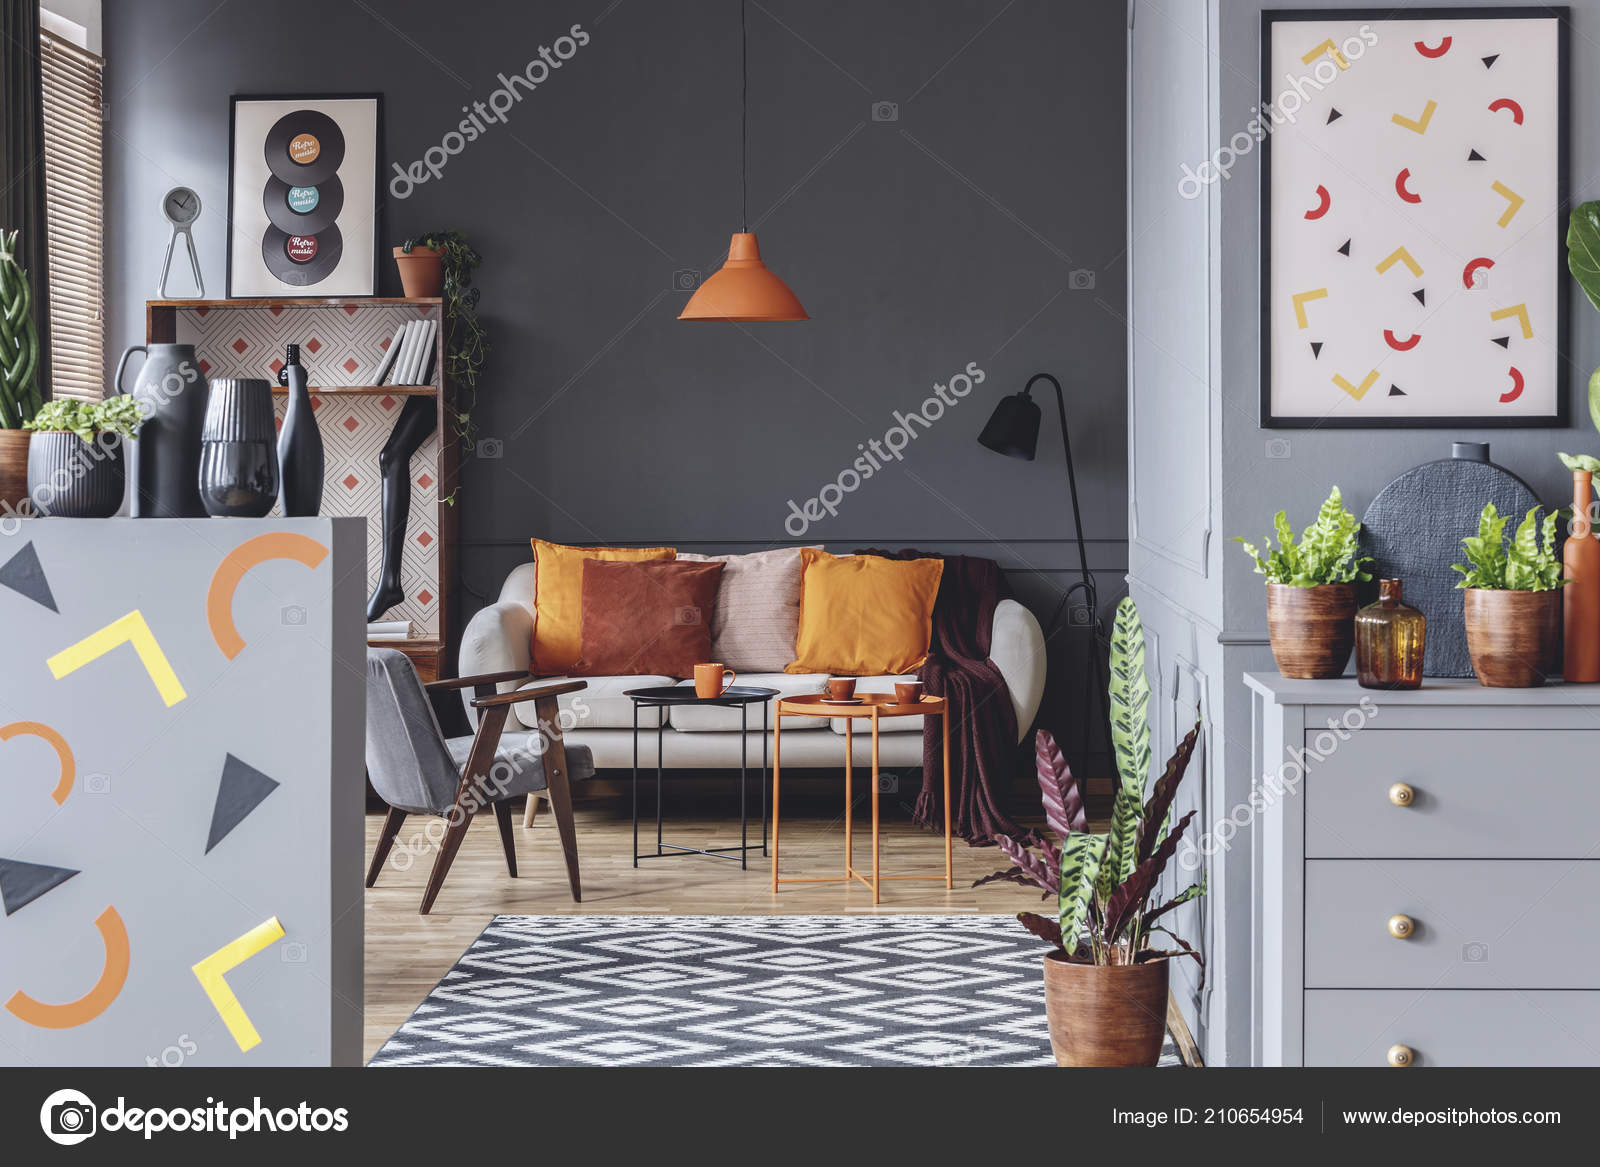 Geometric Shapes Poster Spacious Grey Orange Living Room Interior Sofa Stock Photo C Photographee Eu 210654954